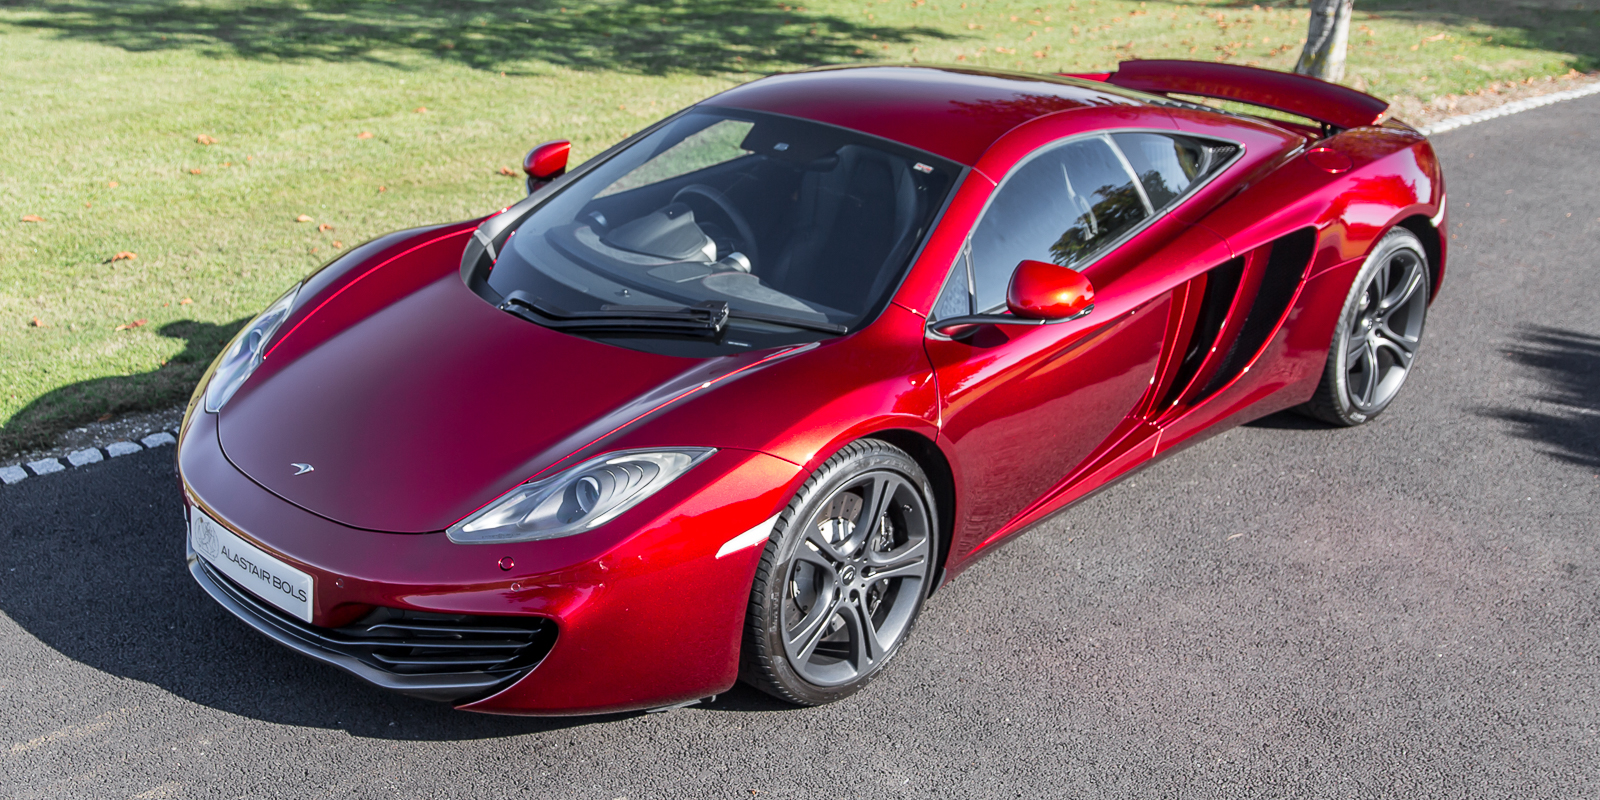 McLaren 12C Coupe Volcano Red